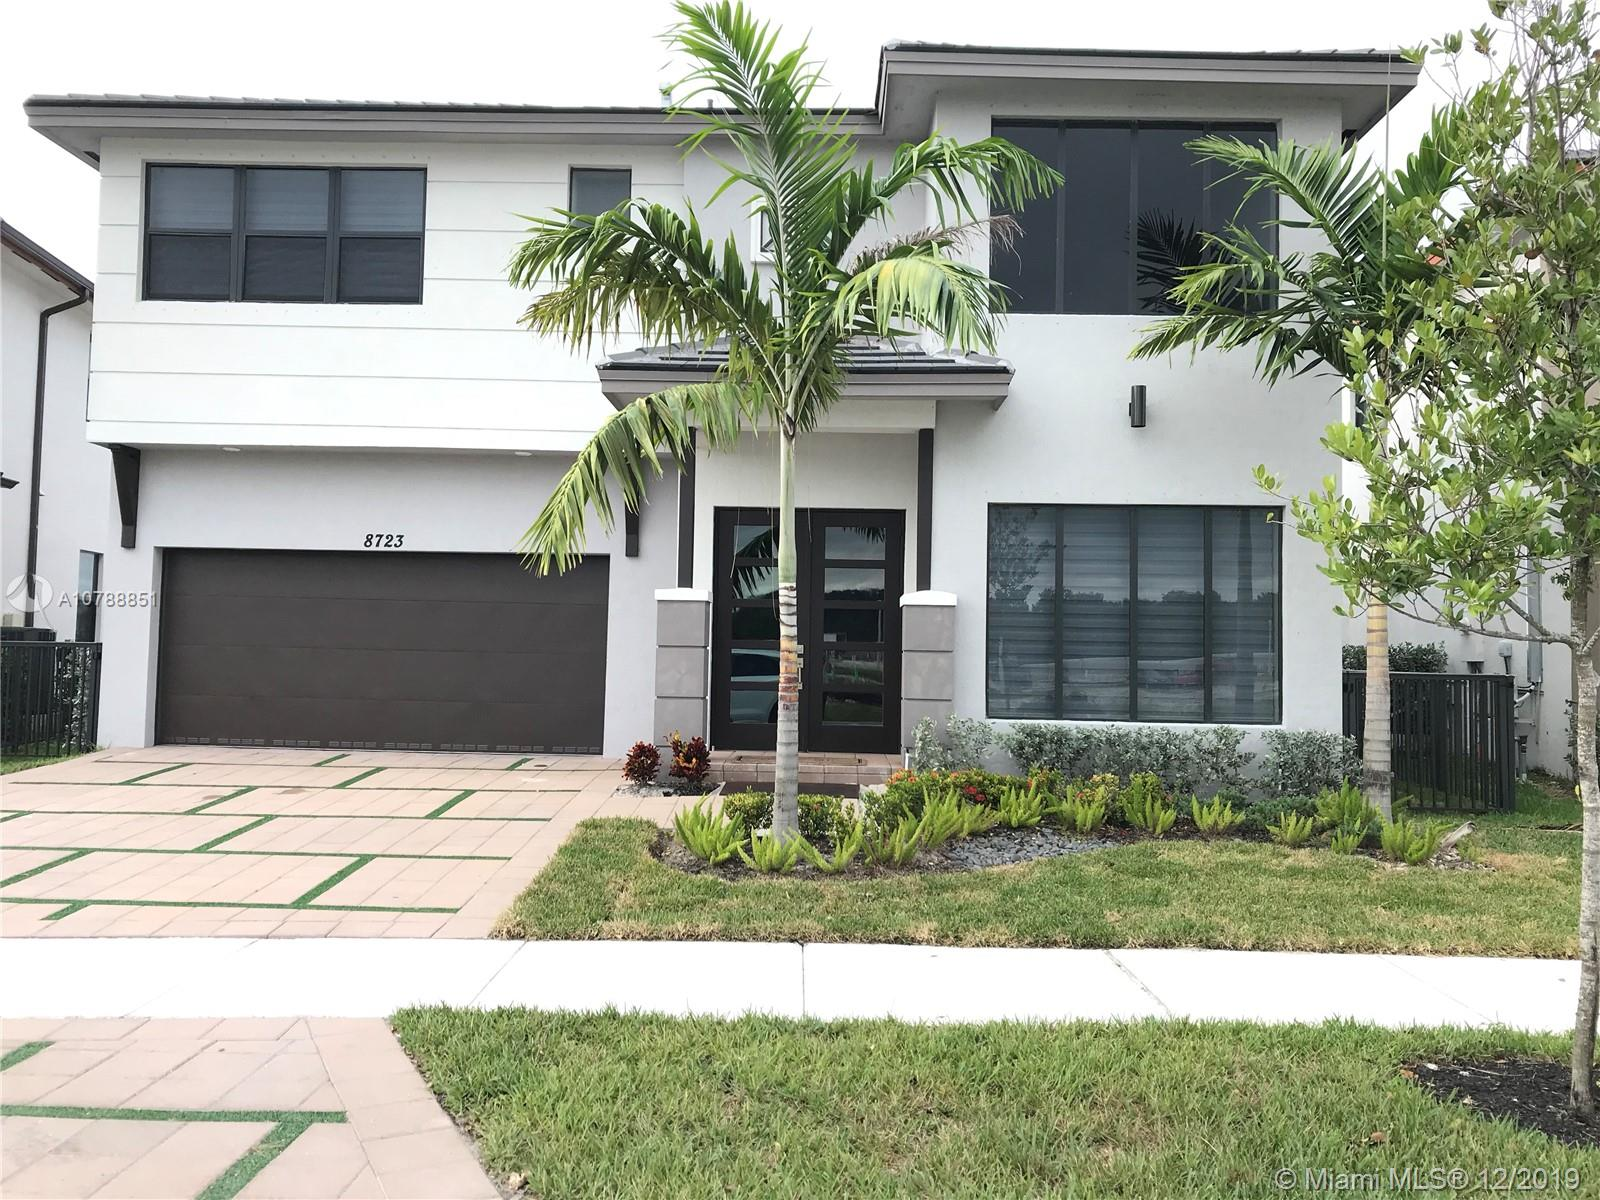 8723 NW 159th St, Miami Lakes FL 33018